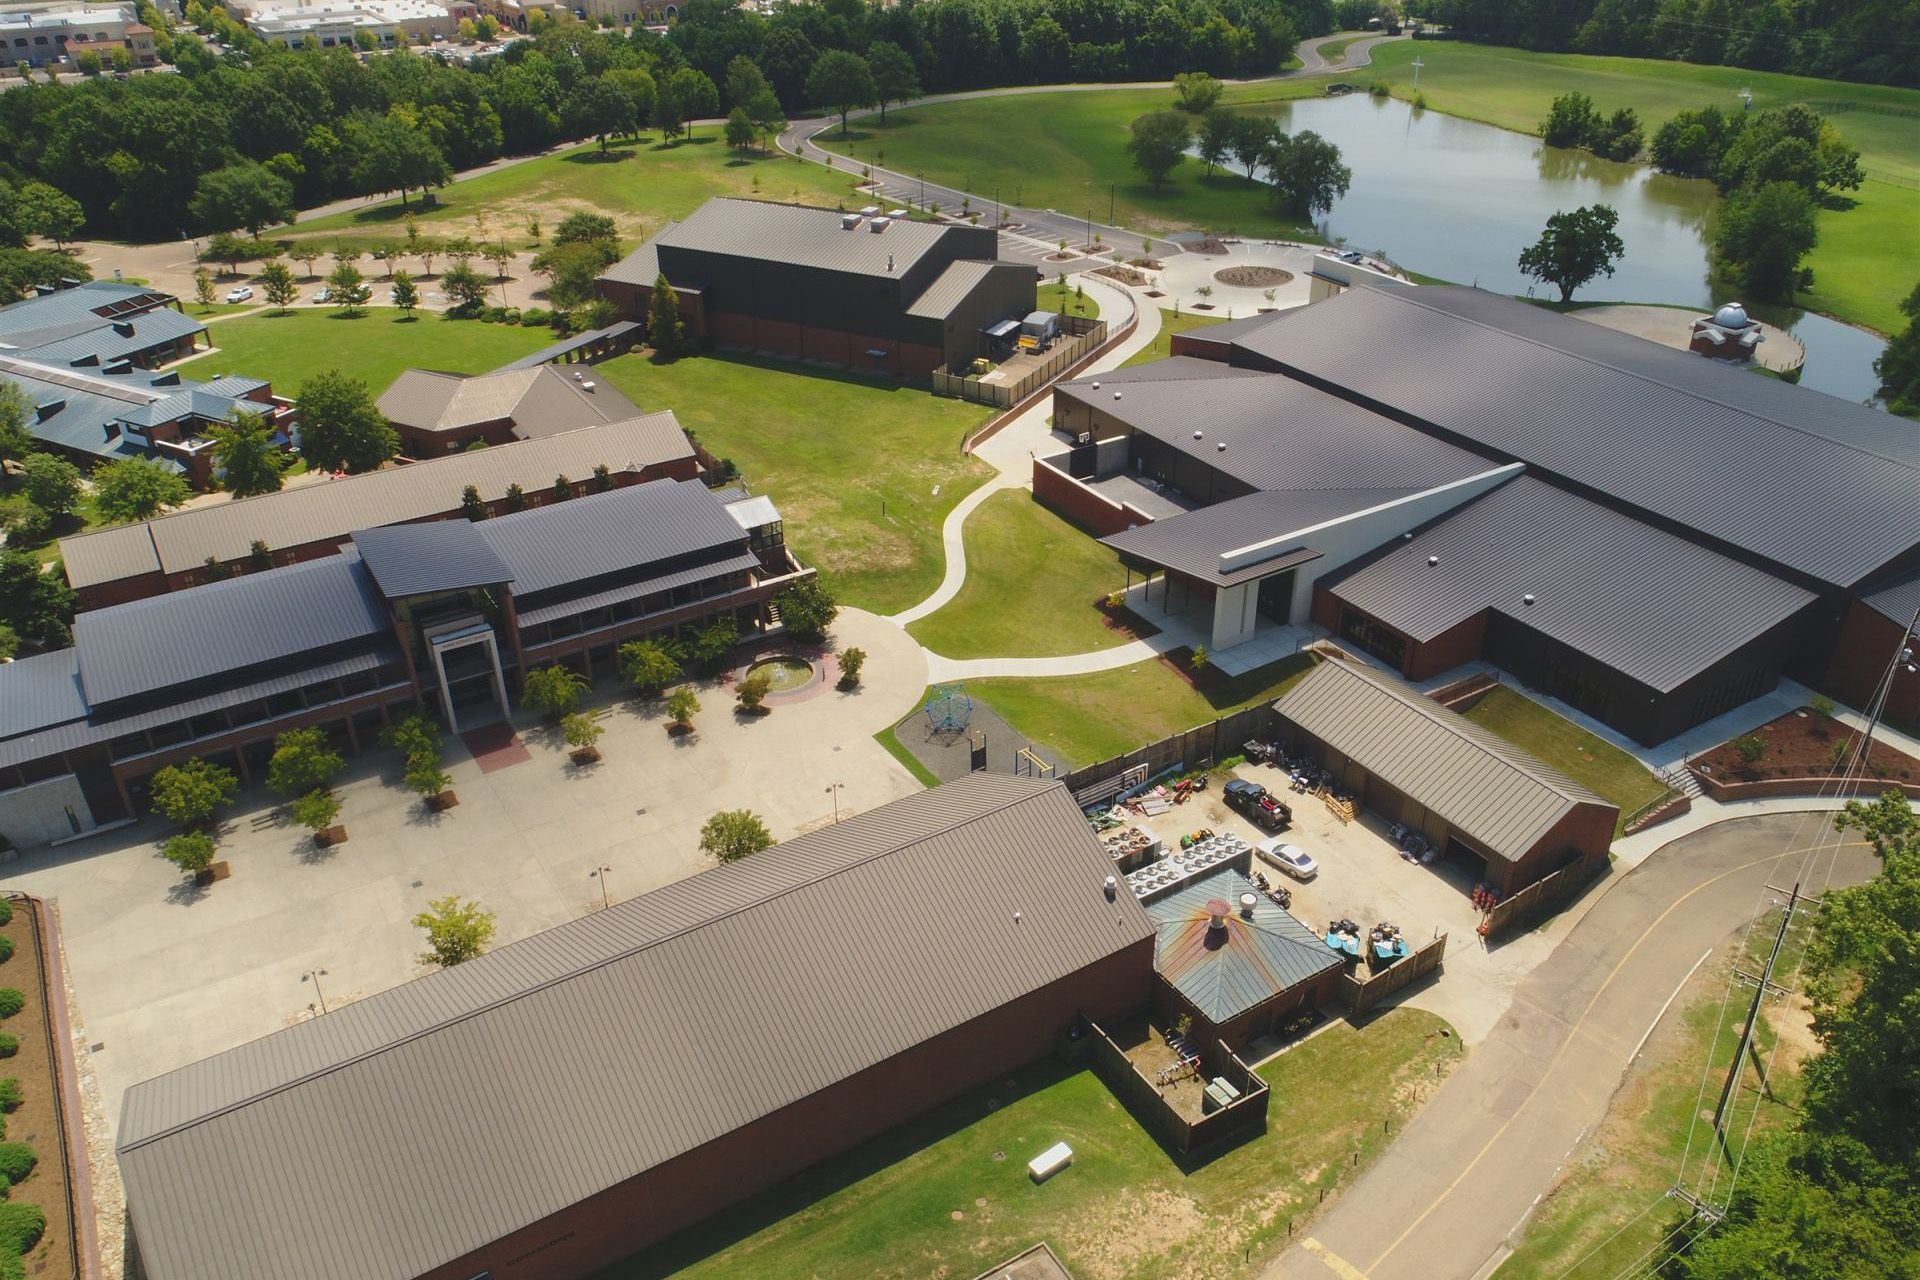 St. Andrew's north campus sits on 72 acres with an abundance of innovative facilities and outdoor spaces.